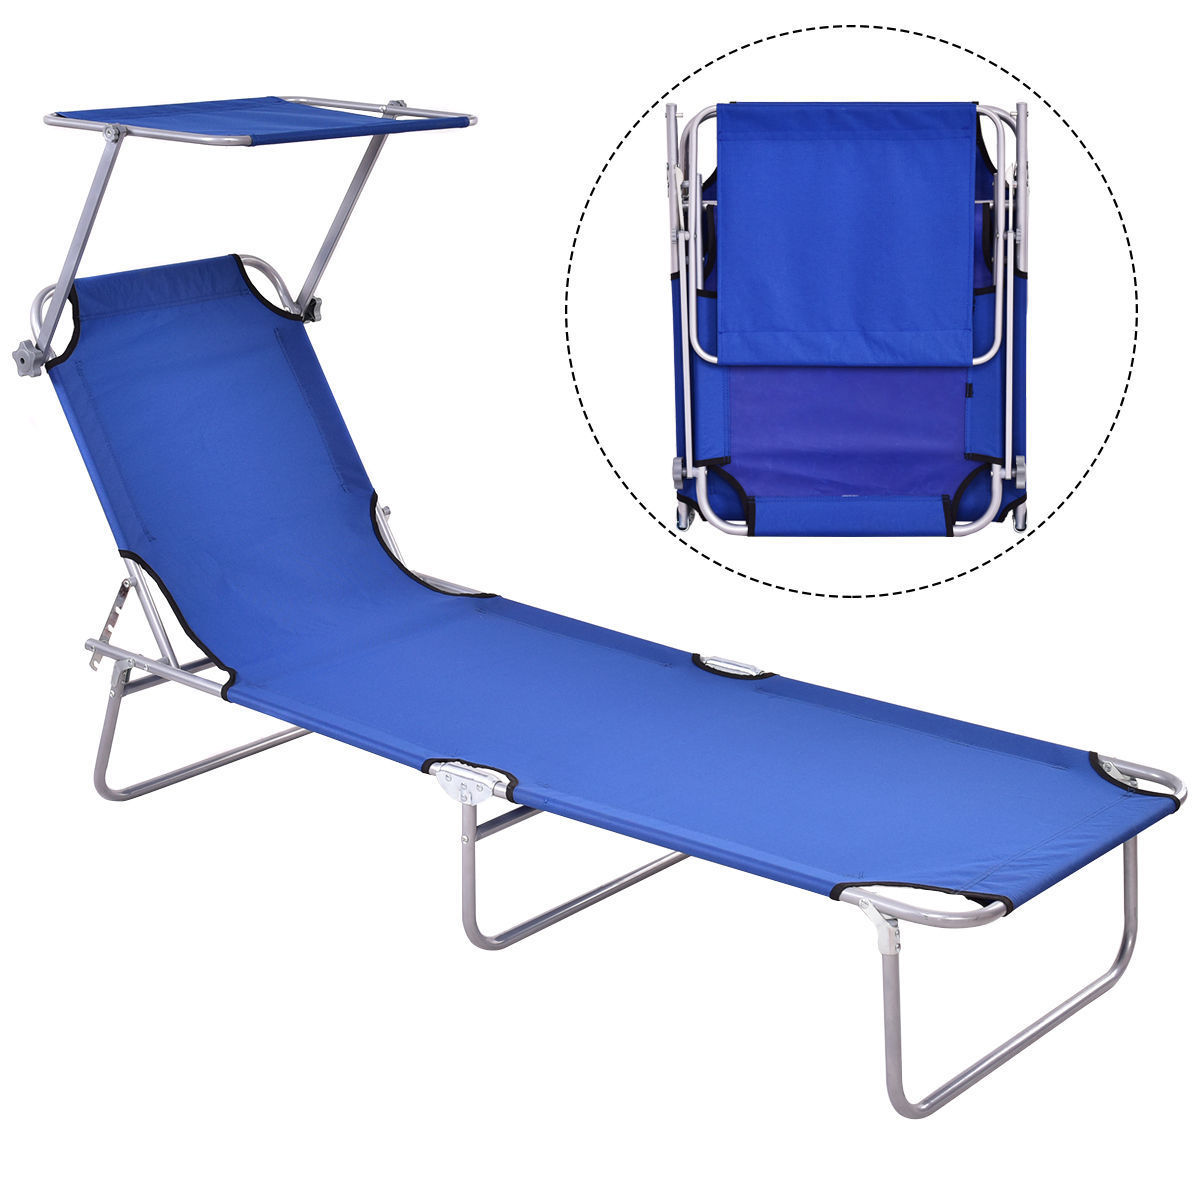 Foldable Bed Chair Gymax Foldable Sun Lounge Bed Chair Beach Recliner Seat Back Blue